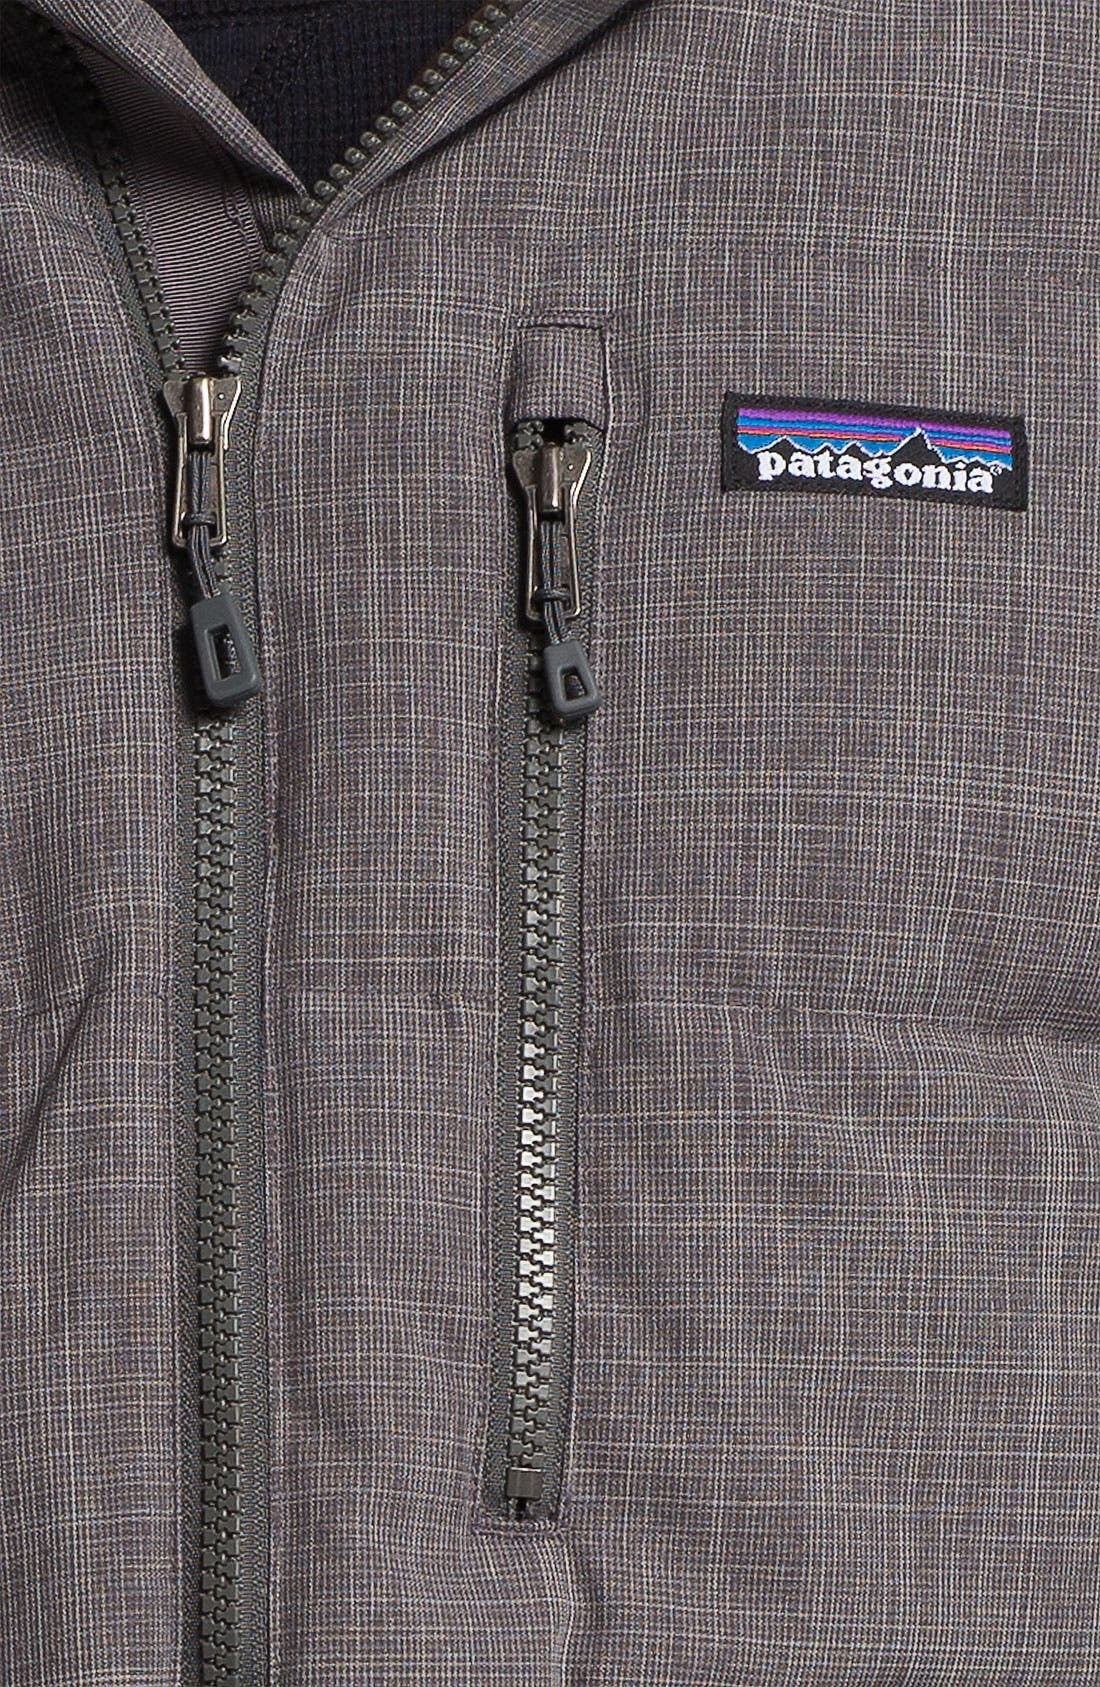 Alternate Image 3  - Patagonia 'Doubledown' Water Repellent Down Parka